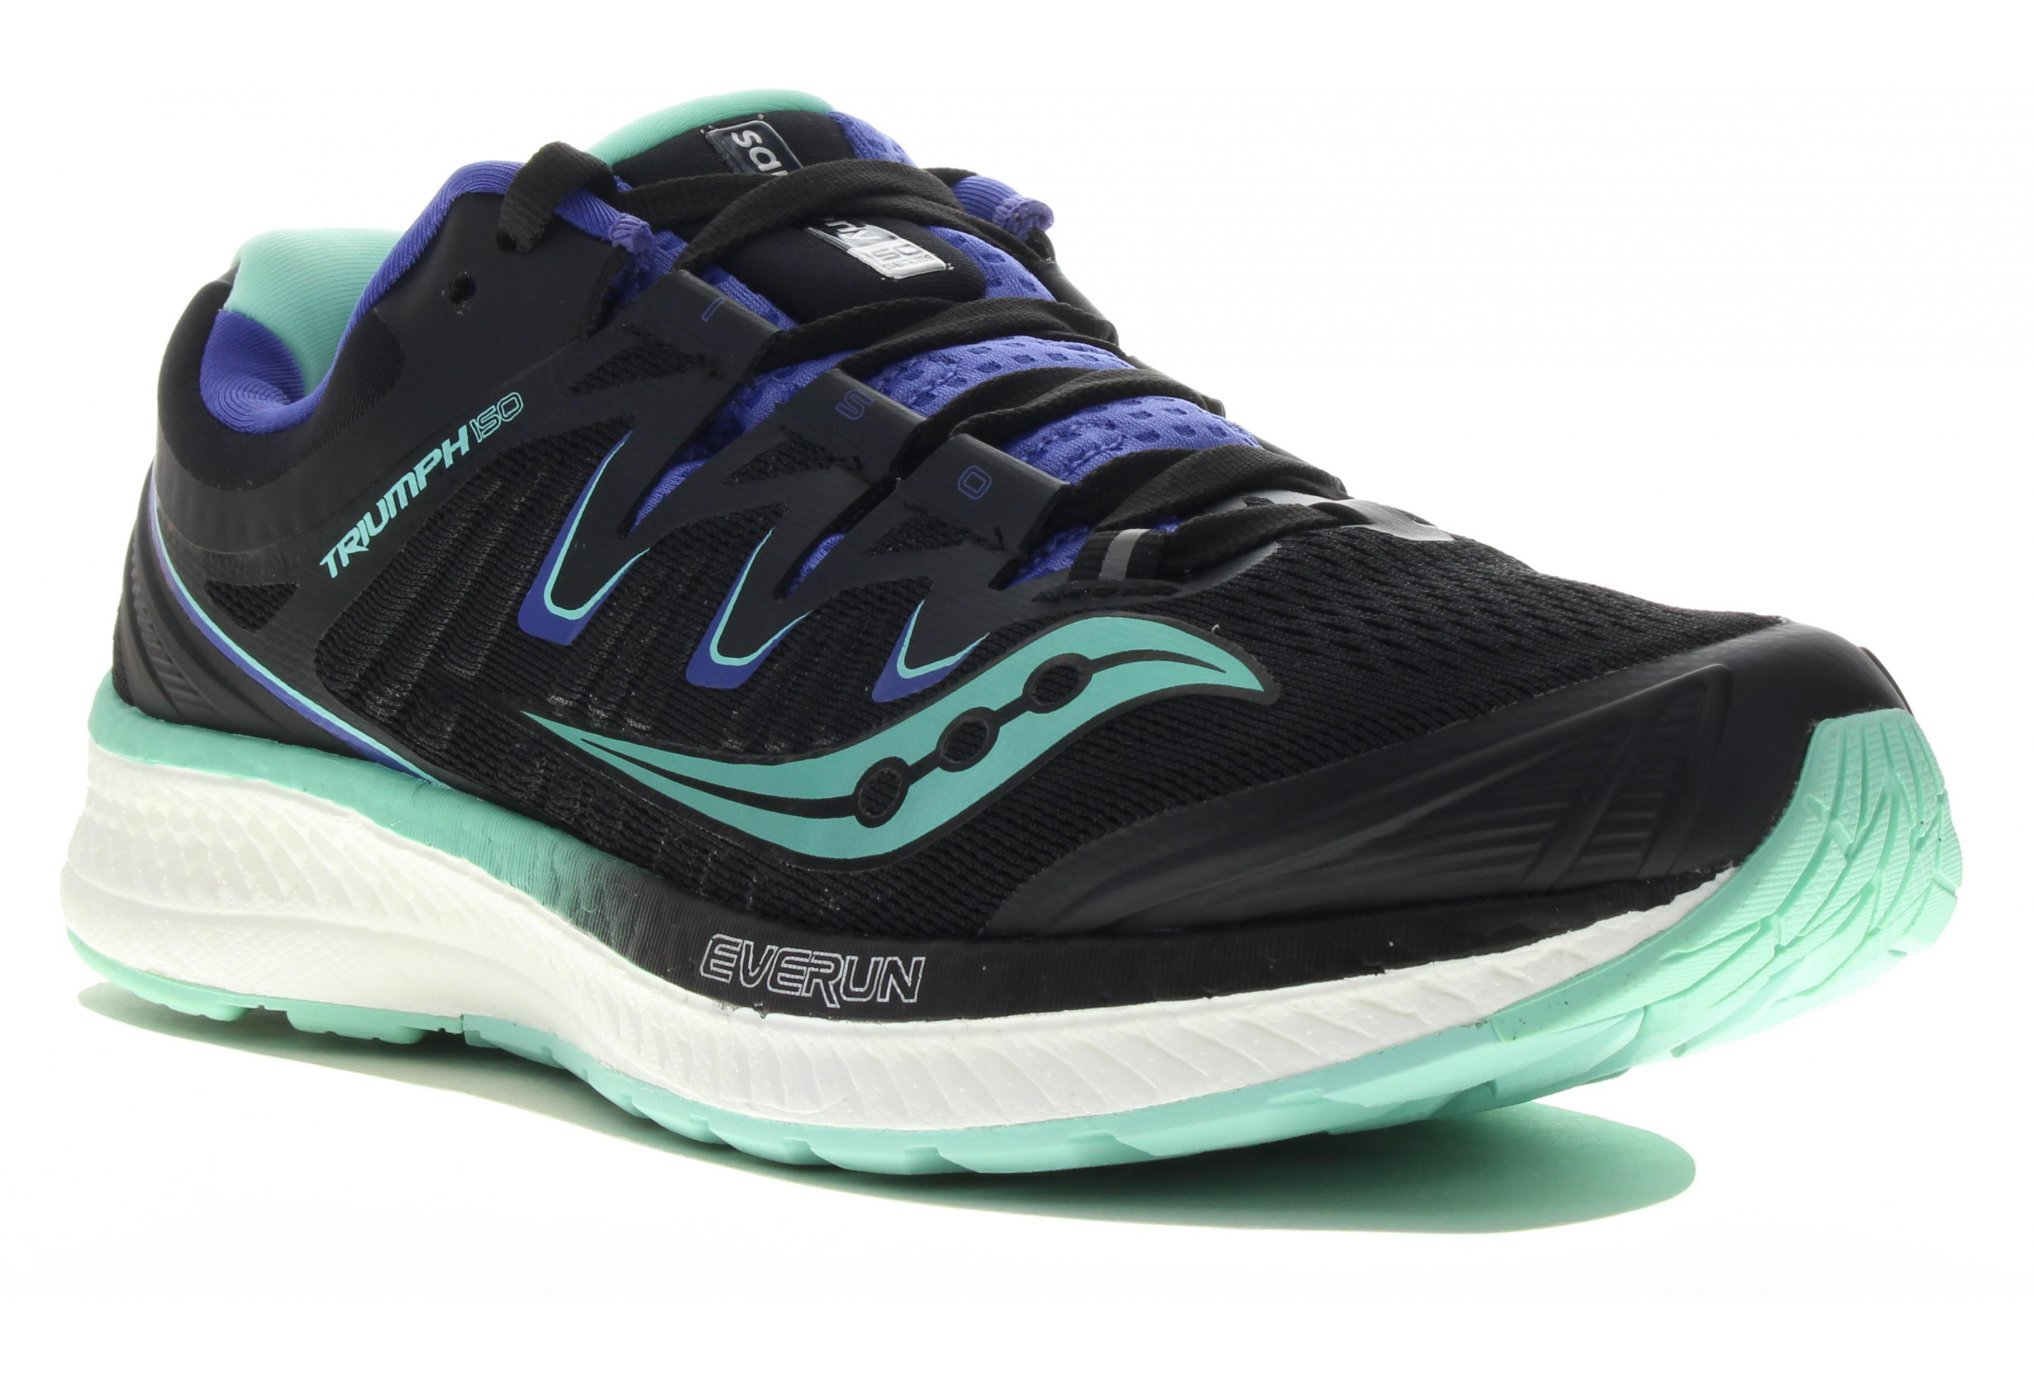 Saucony Triumph ISO 4 Chaussures running femme